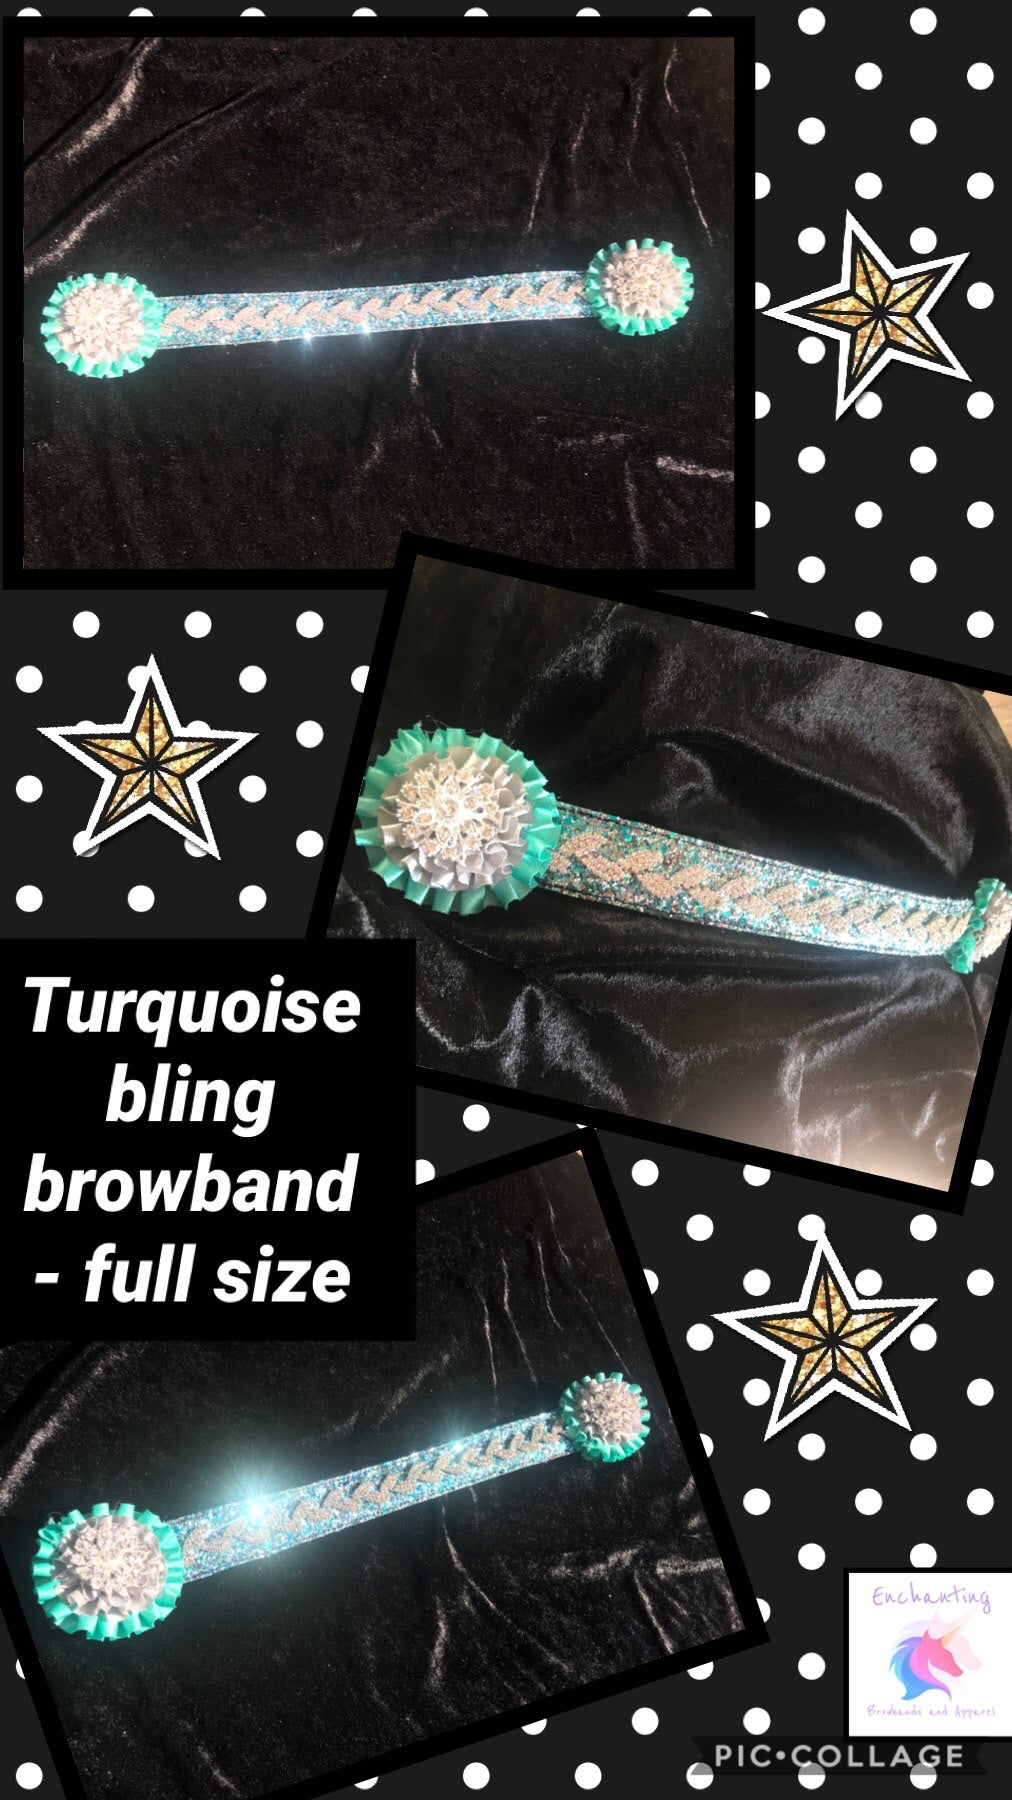 Turquoise bling browband